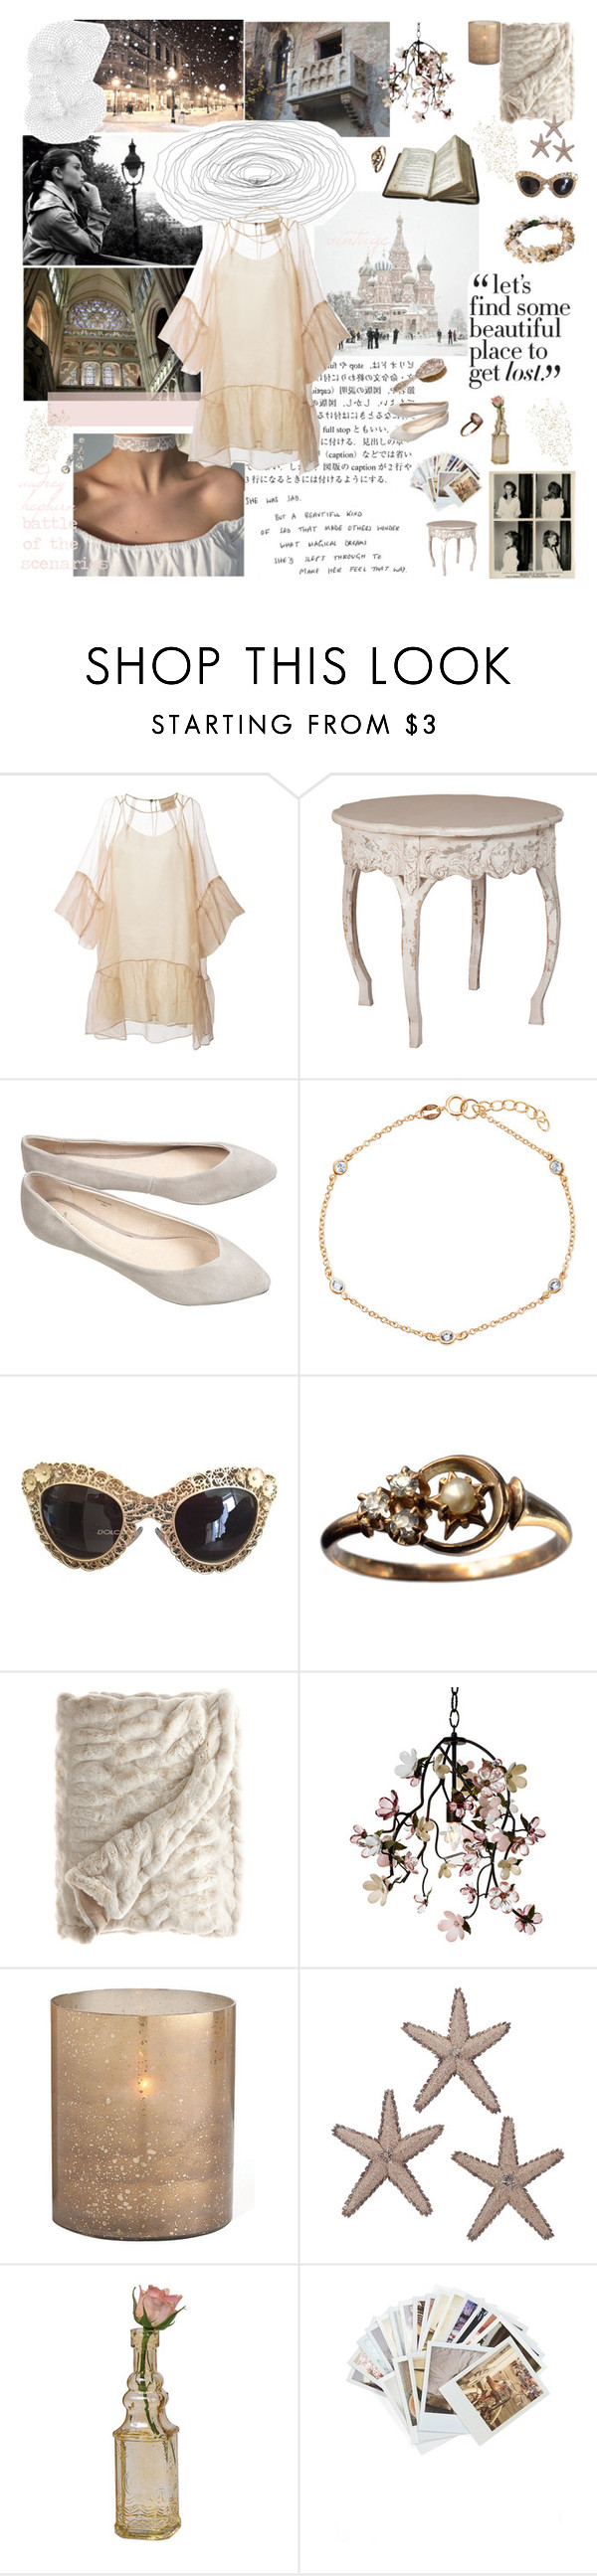 """""""choose"""" by my-pink-wings ❤ liked on Polyvore featuring Prada, VERONA, Erika Cavallini Semi-Couture, Tiffany & Co., Milly, BERRICLE, Dolce&Gabbana, Calypso Home, Erickson Beamon and Canopy Designs"""